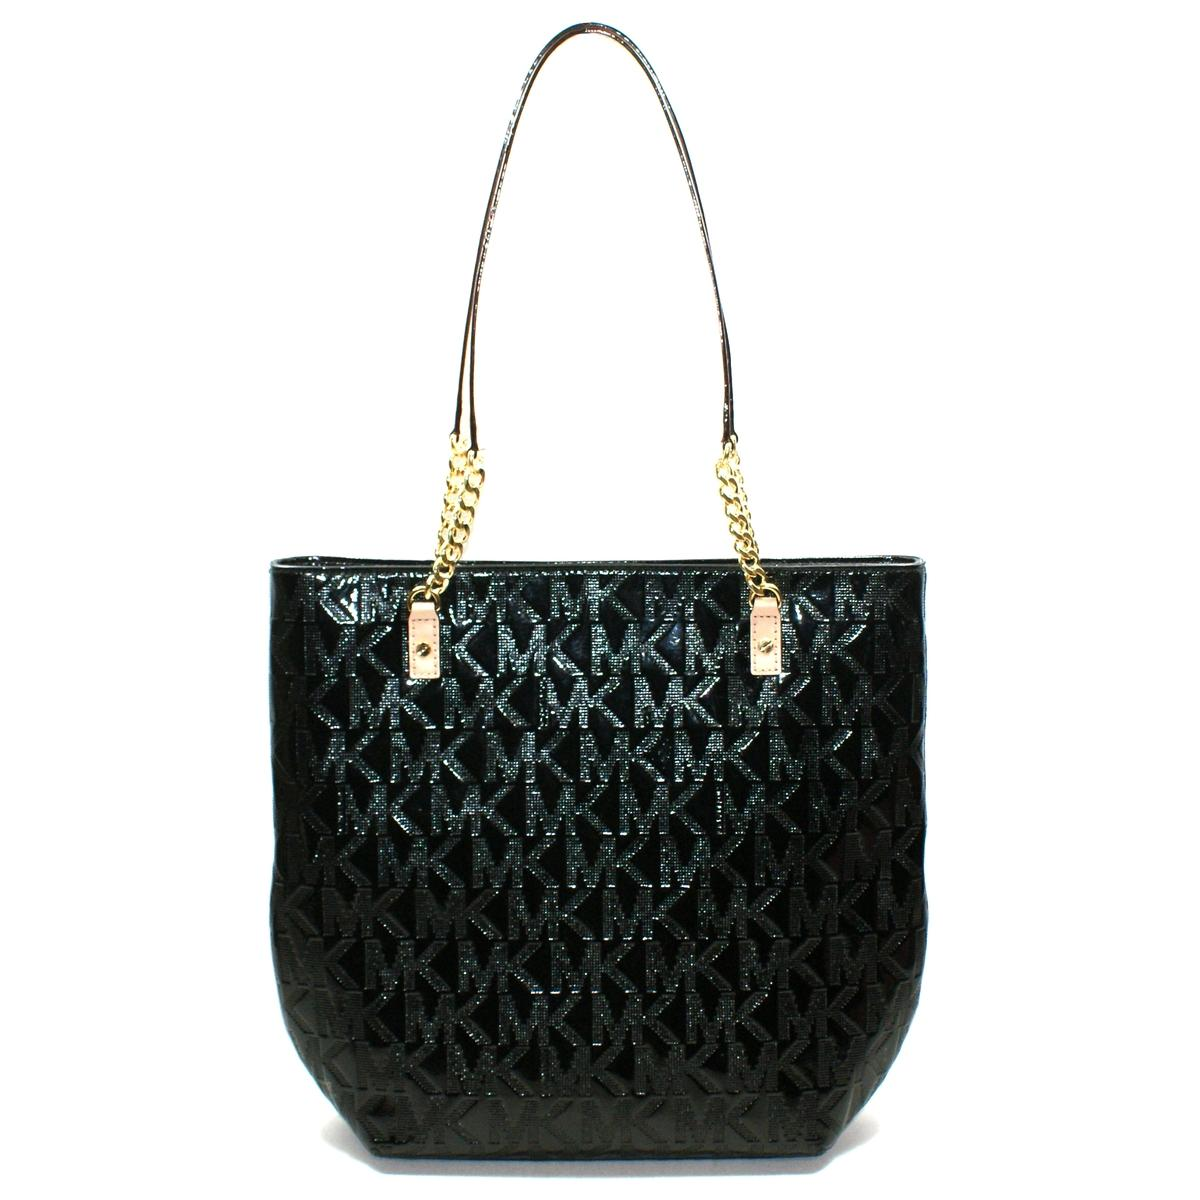 7e2896070c7cc6 Home · Michael Kors · Jet Set Chain MK Signature Patent Leather Tote Black.  CLICK THUMBNAIL TO ZOOM. Found In: Handbags